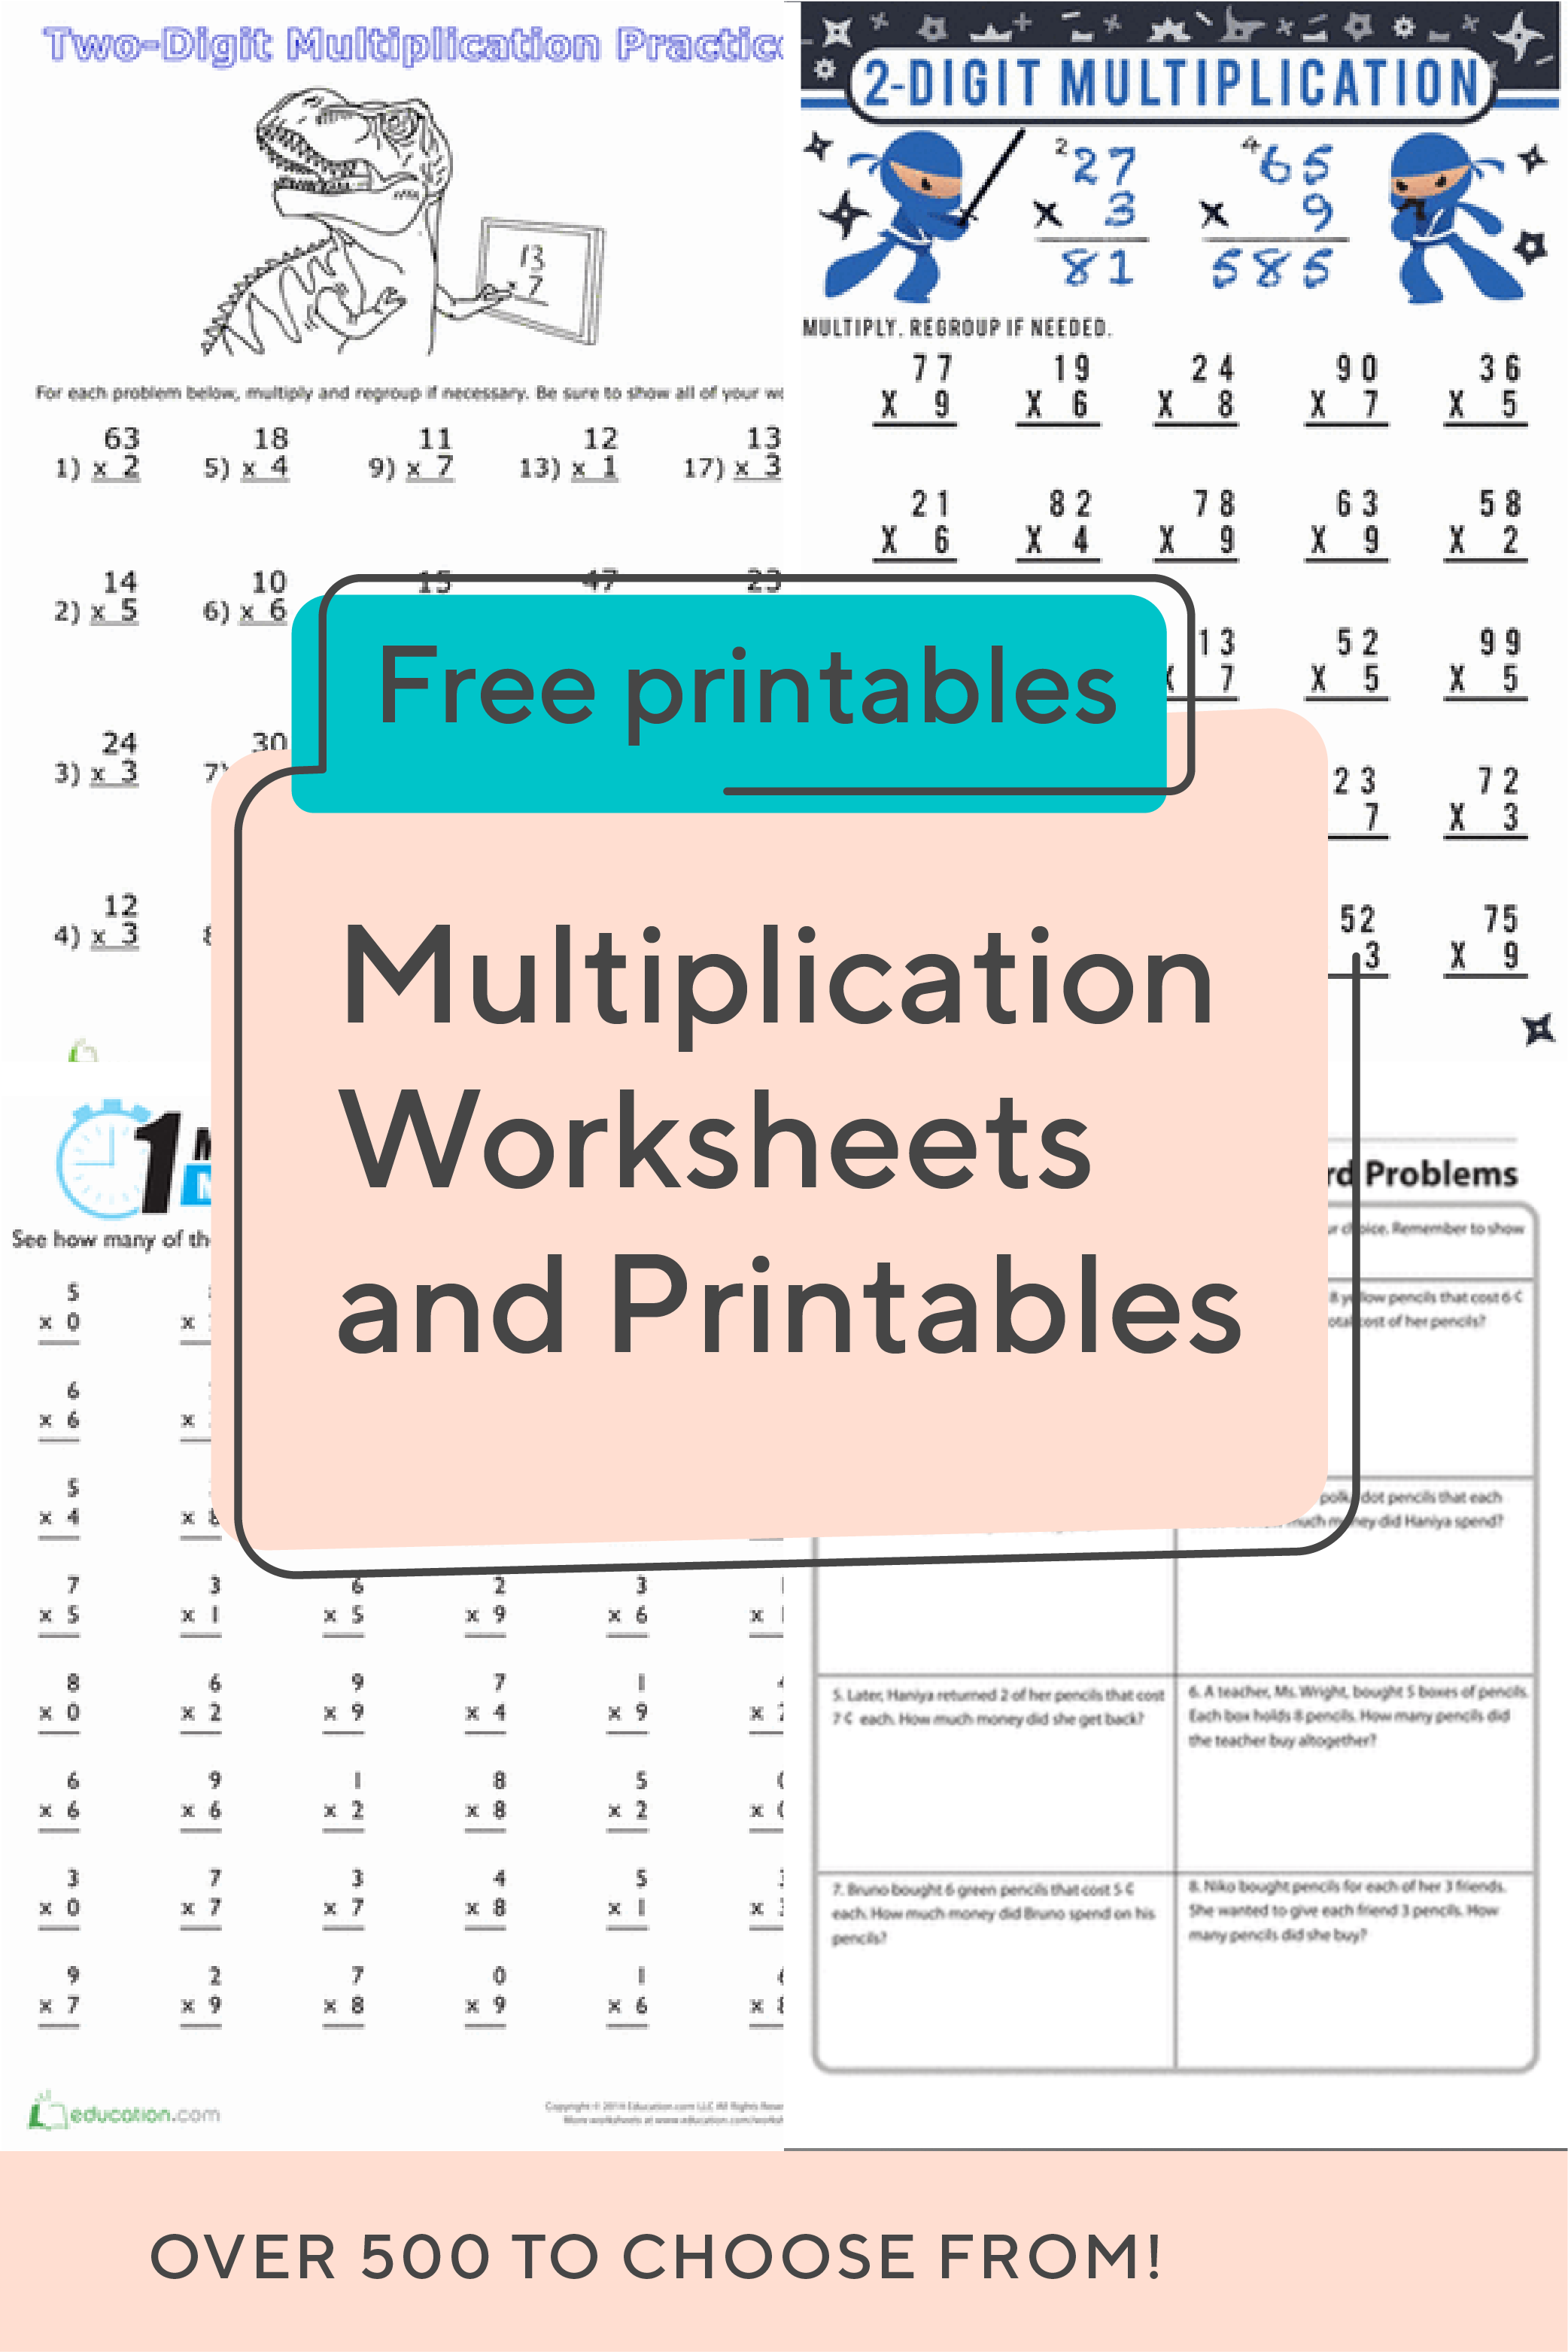 Multiplication Worksheets And Printables These Multiplication Worksheets Cover Everything F Multiplication Worksheets Kindergarten Worksheets Time Worksheets [ 3126 x 2084 Pixel ]